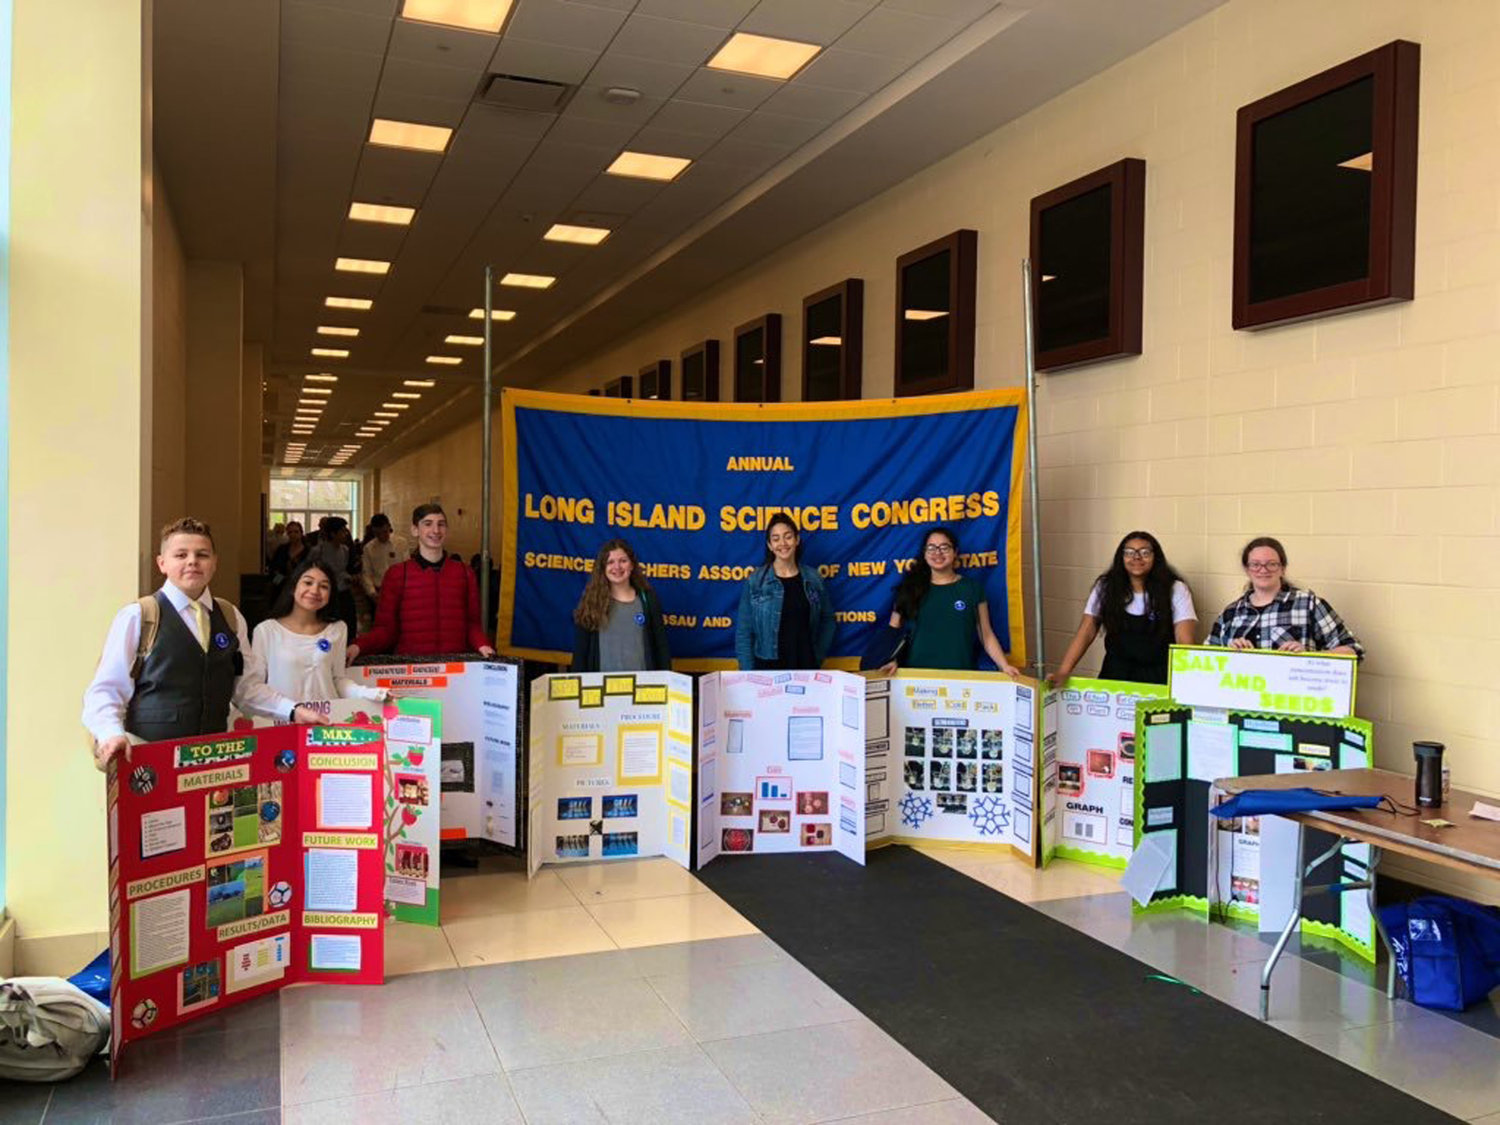 Fourteen West Hempstead students from the middle and high school earned awards for their presentations during this year's Long Island Science Congress on April 9 and 10.